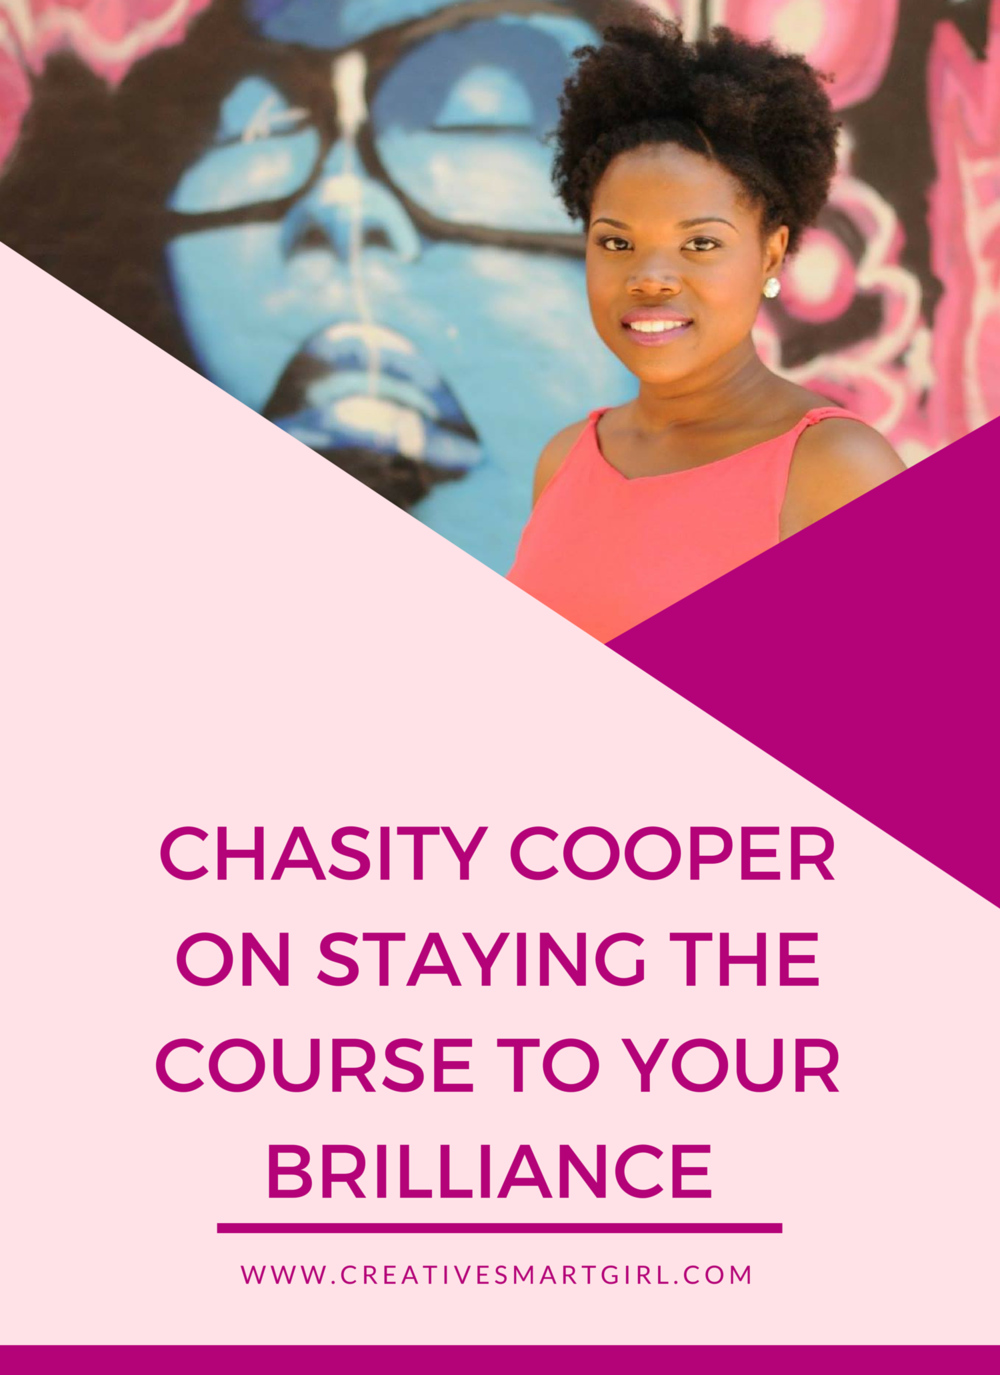 chasity cooper on staying the course to your brilliance